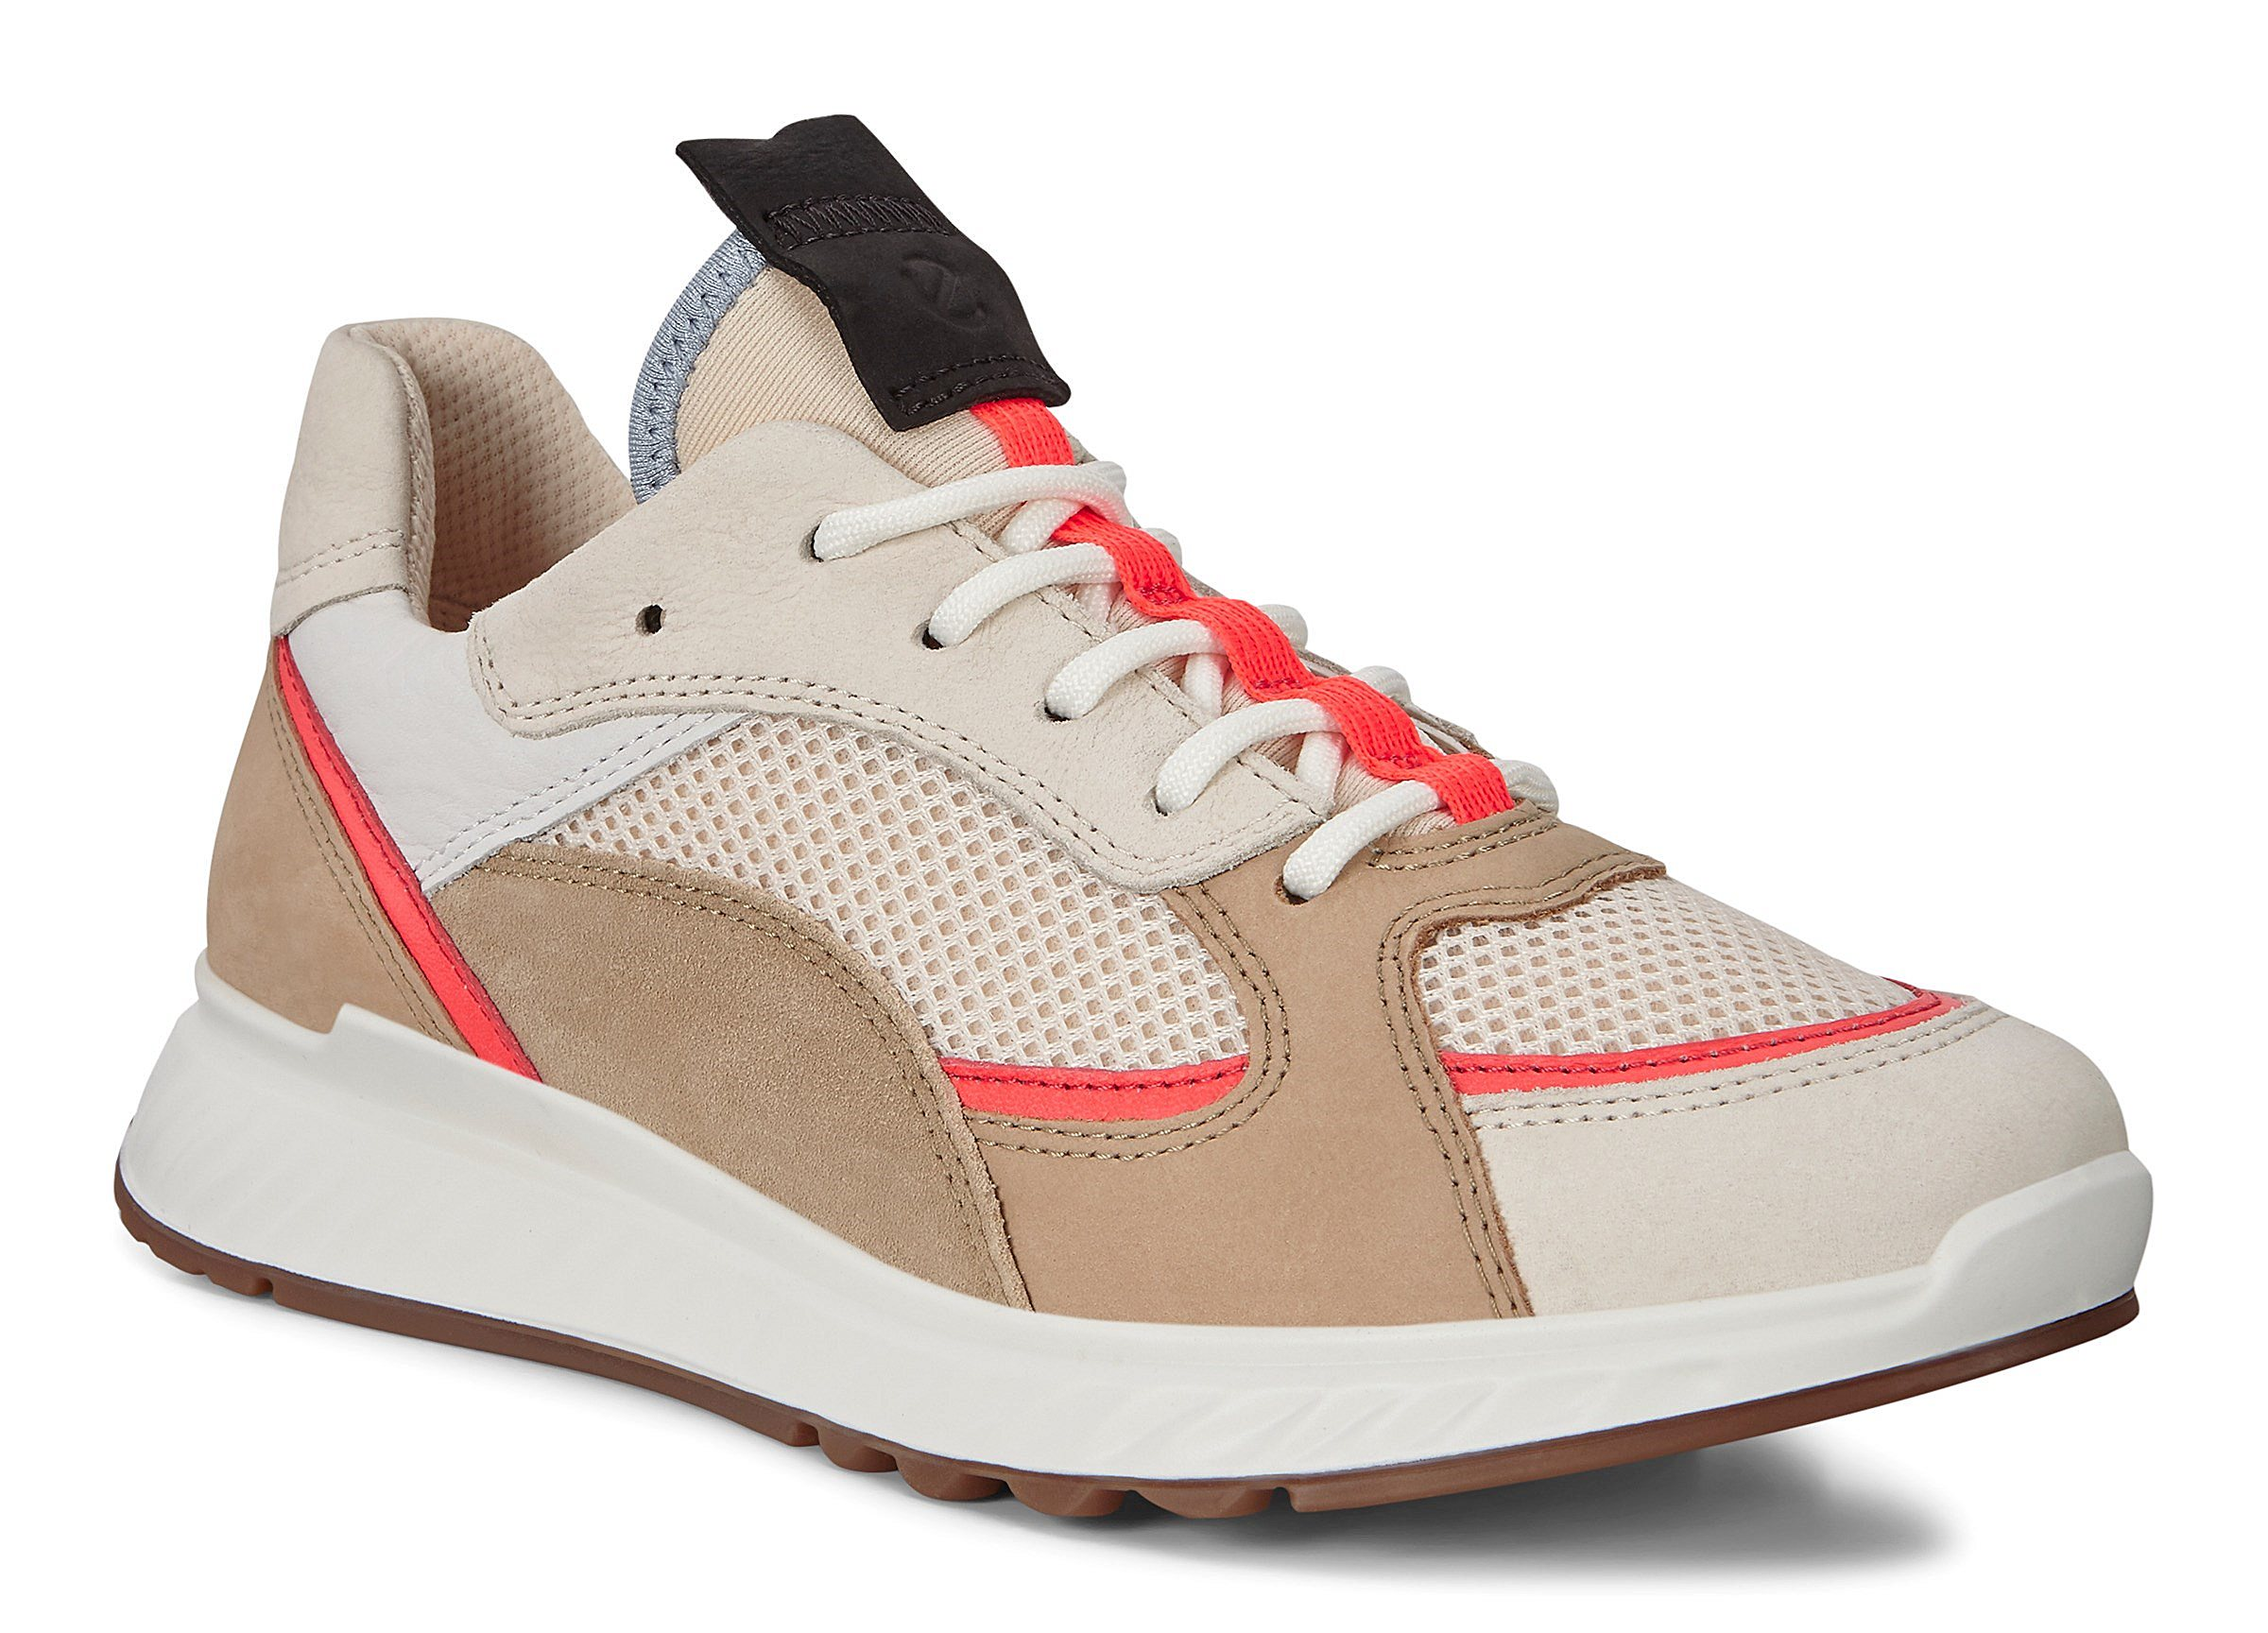 Kierland Commons | Sales | ECCO Women's ST.1 Lite Sneaker